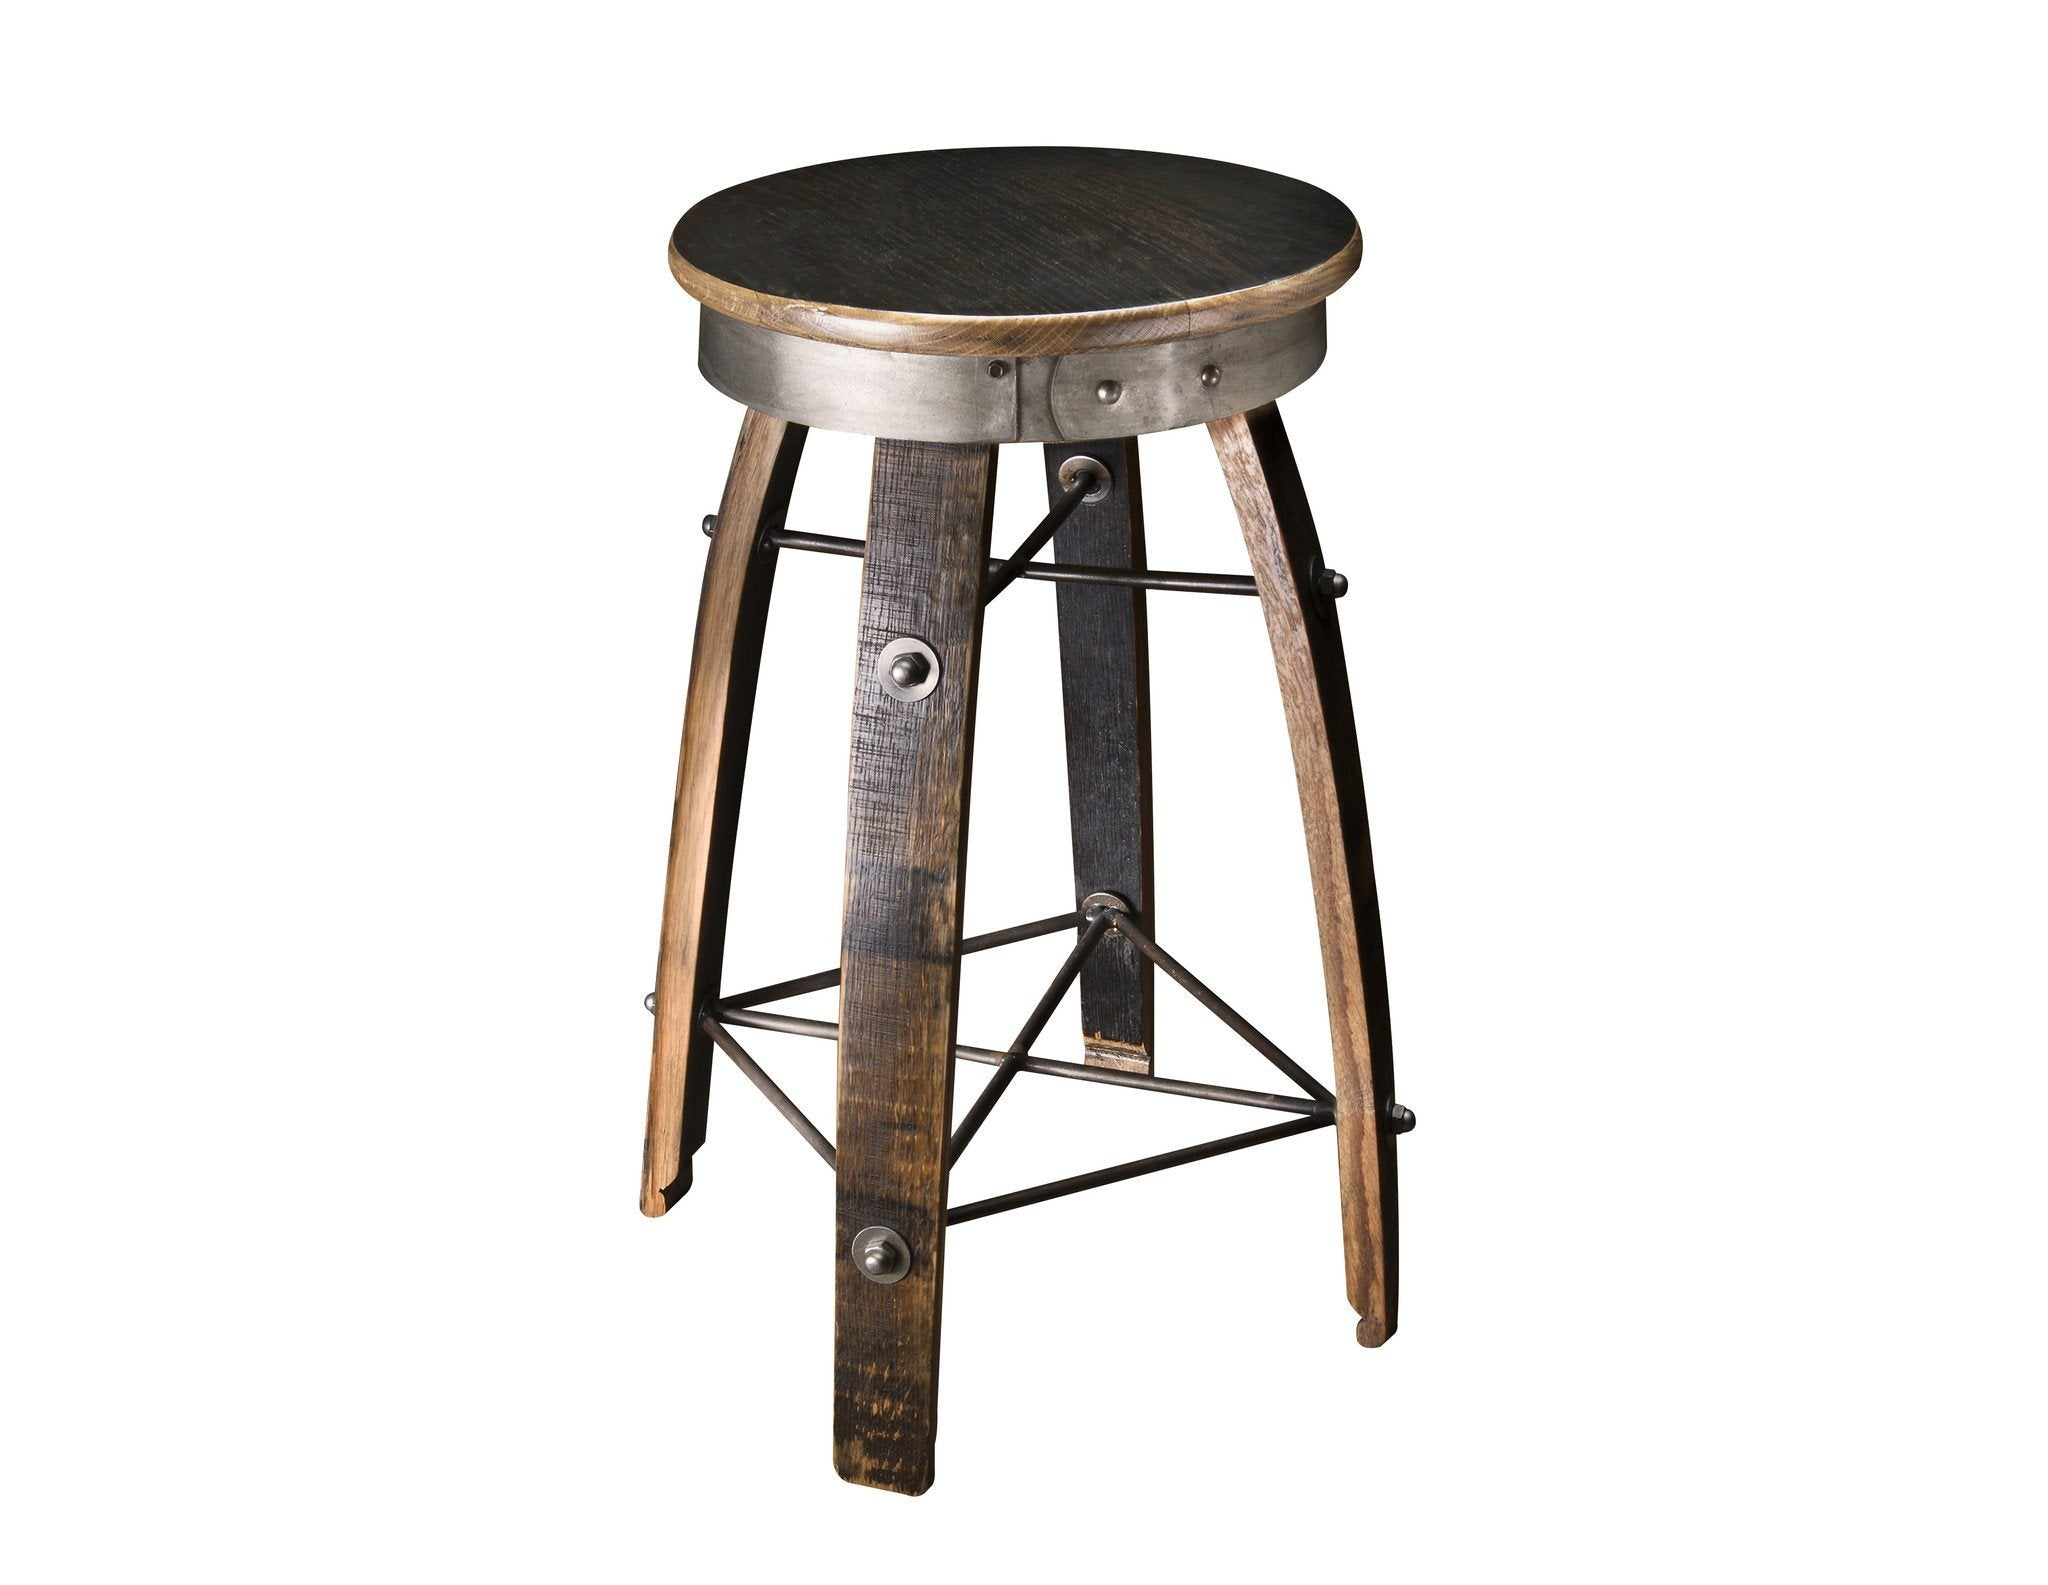 Peachy Whiskey Wood Bar Stool Swivel Seat Gmtry Best Dining Table And Chair Ideas Images Gmtryco